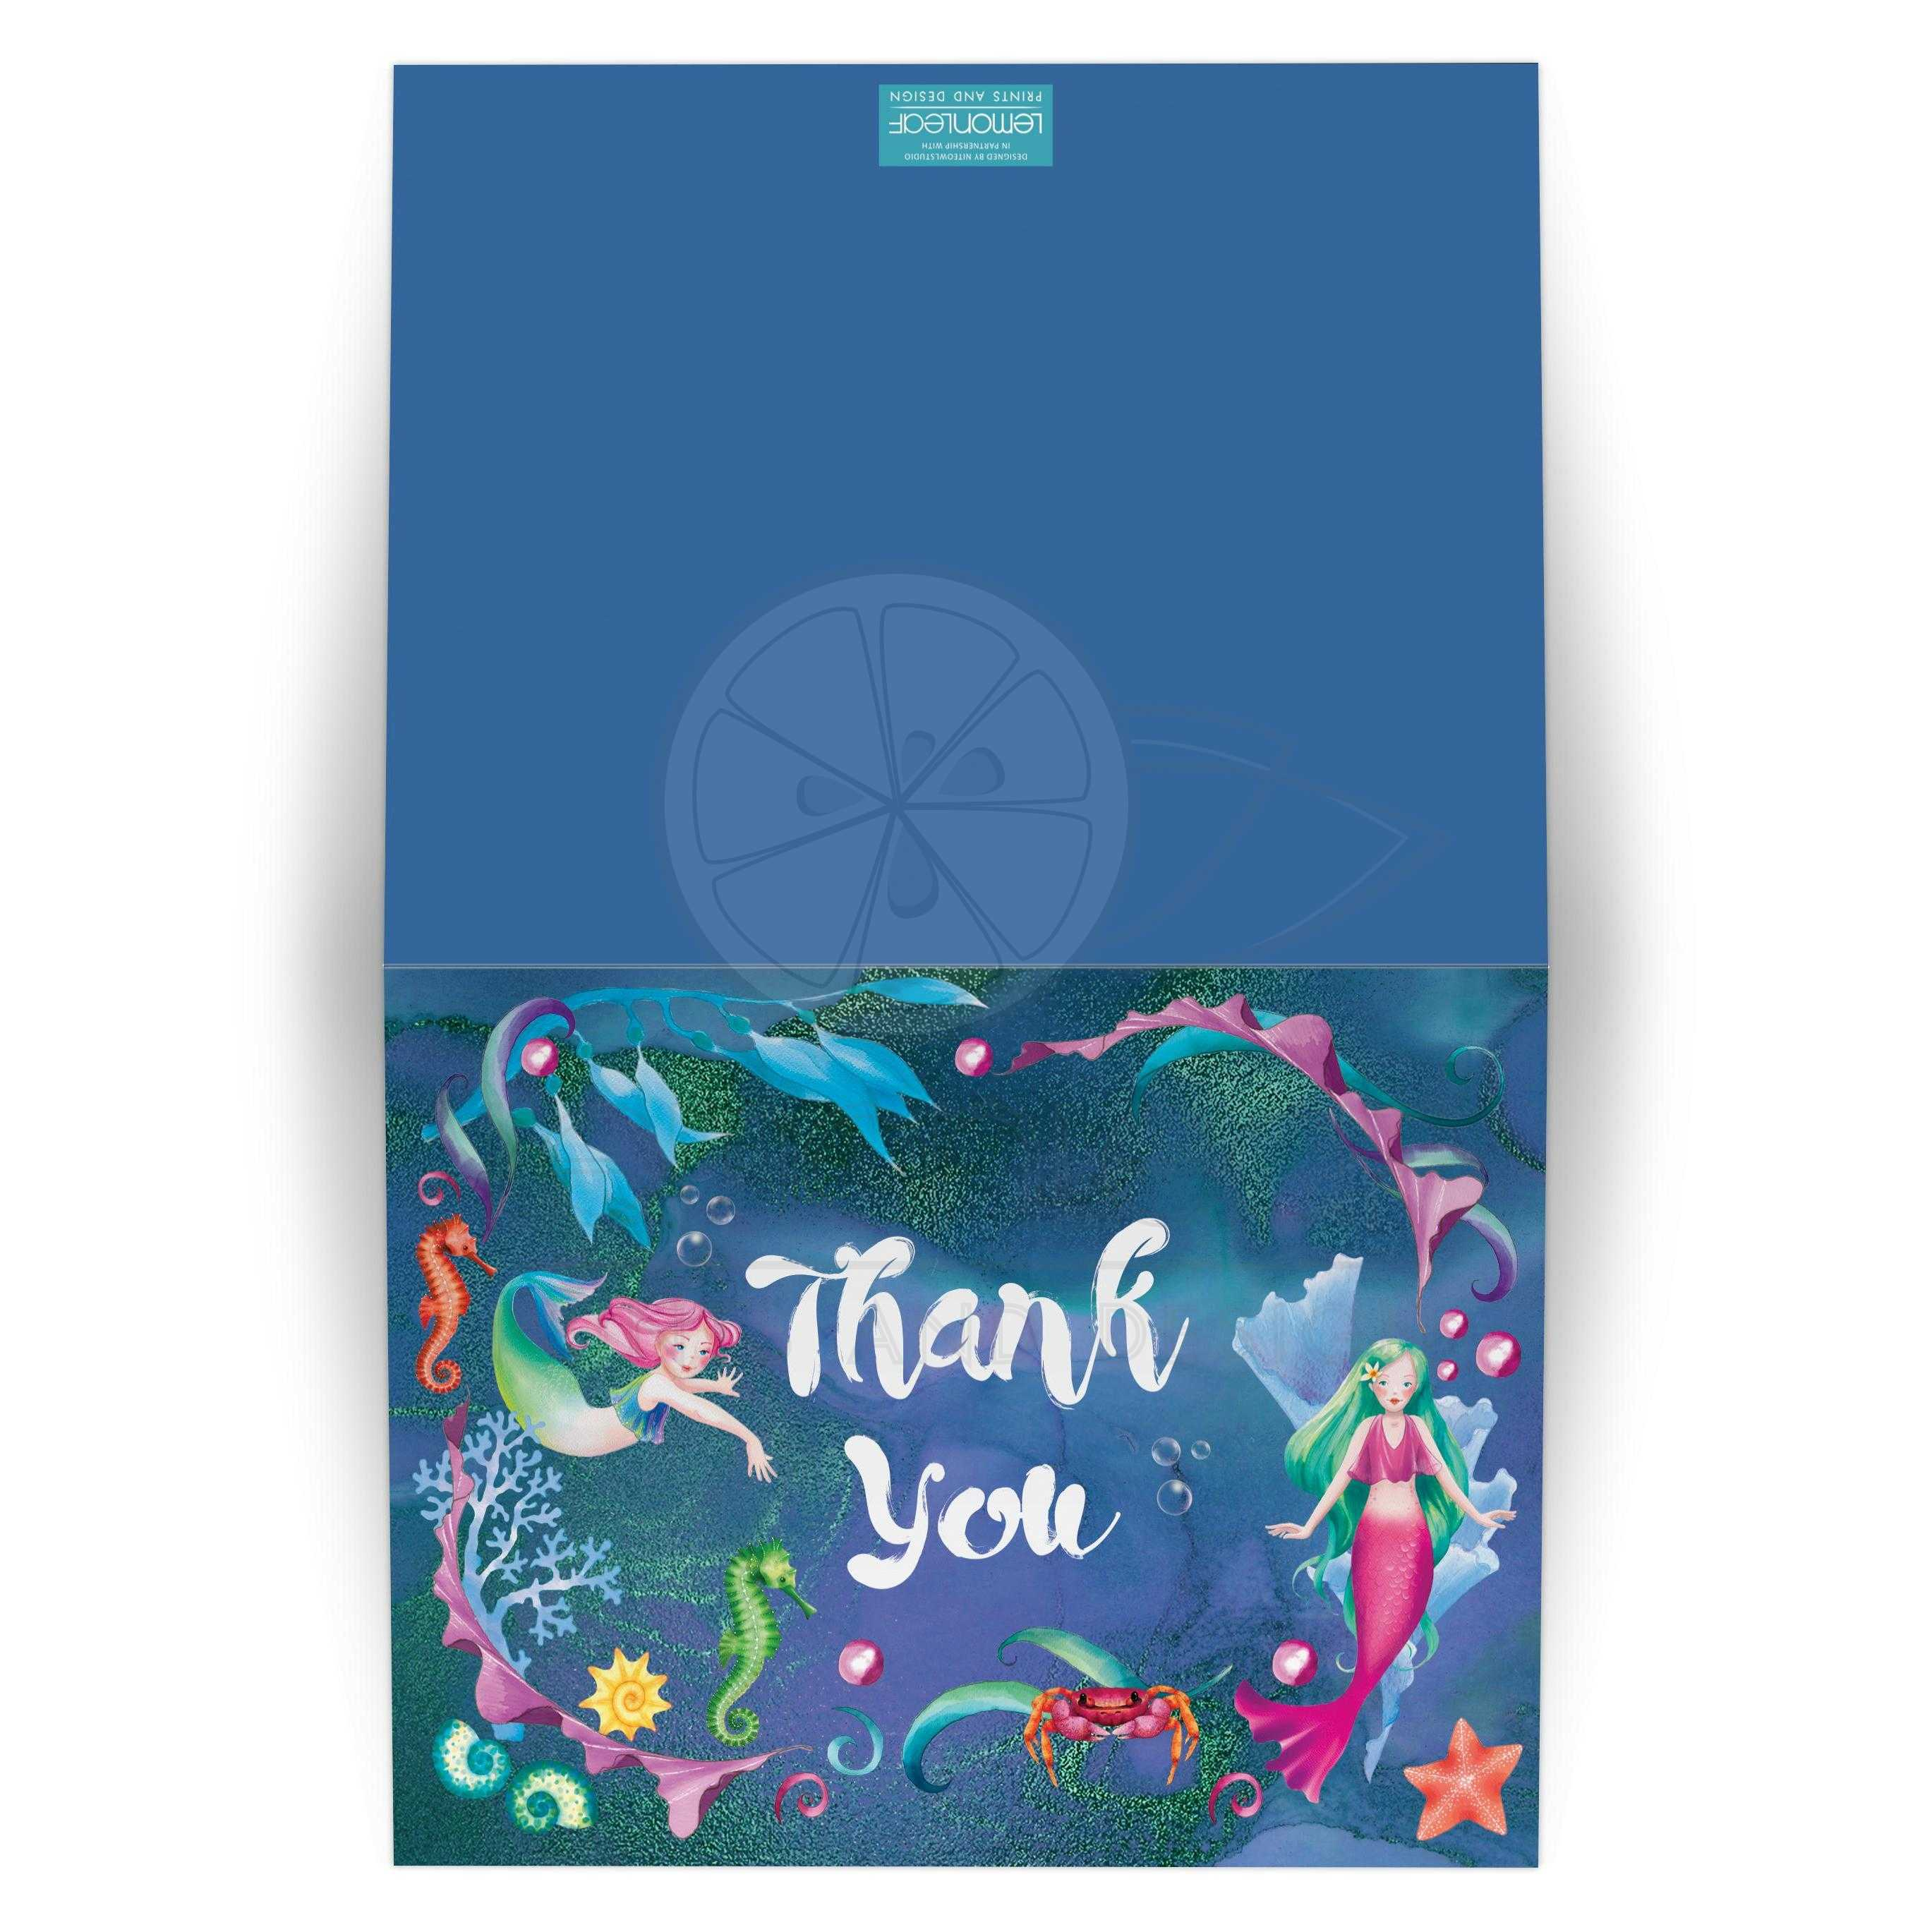 Mermaids Under the Sea Thank You Card - FOLDED